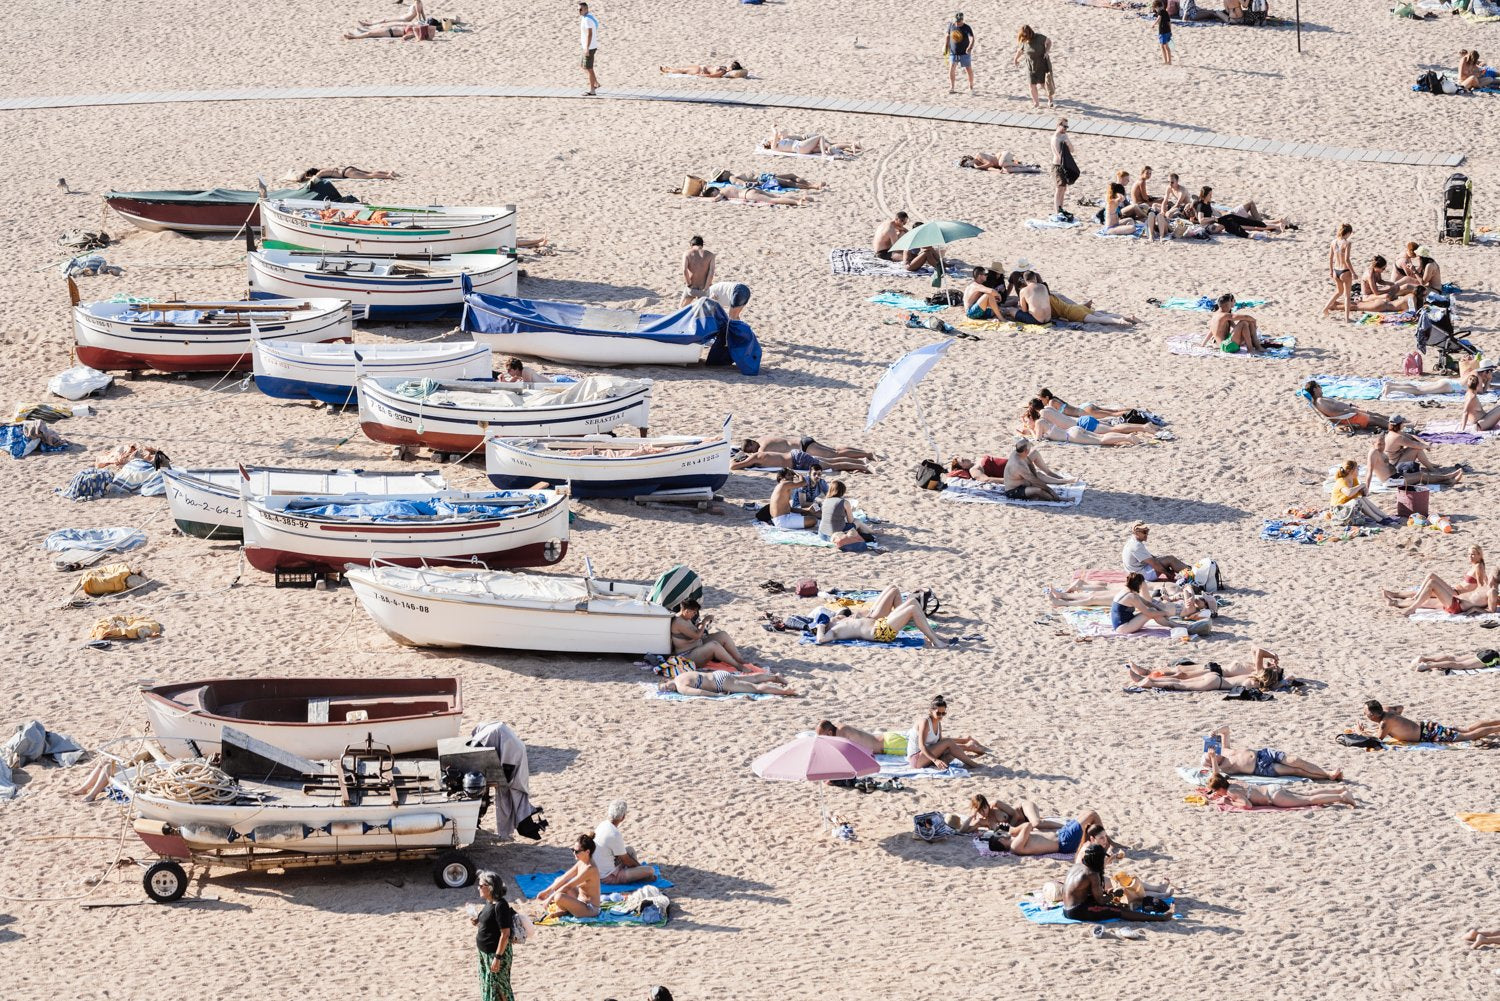 People and boats lying on the sand of Costa Brava